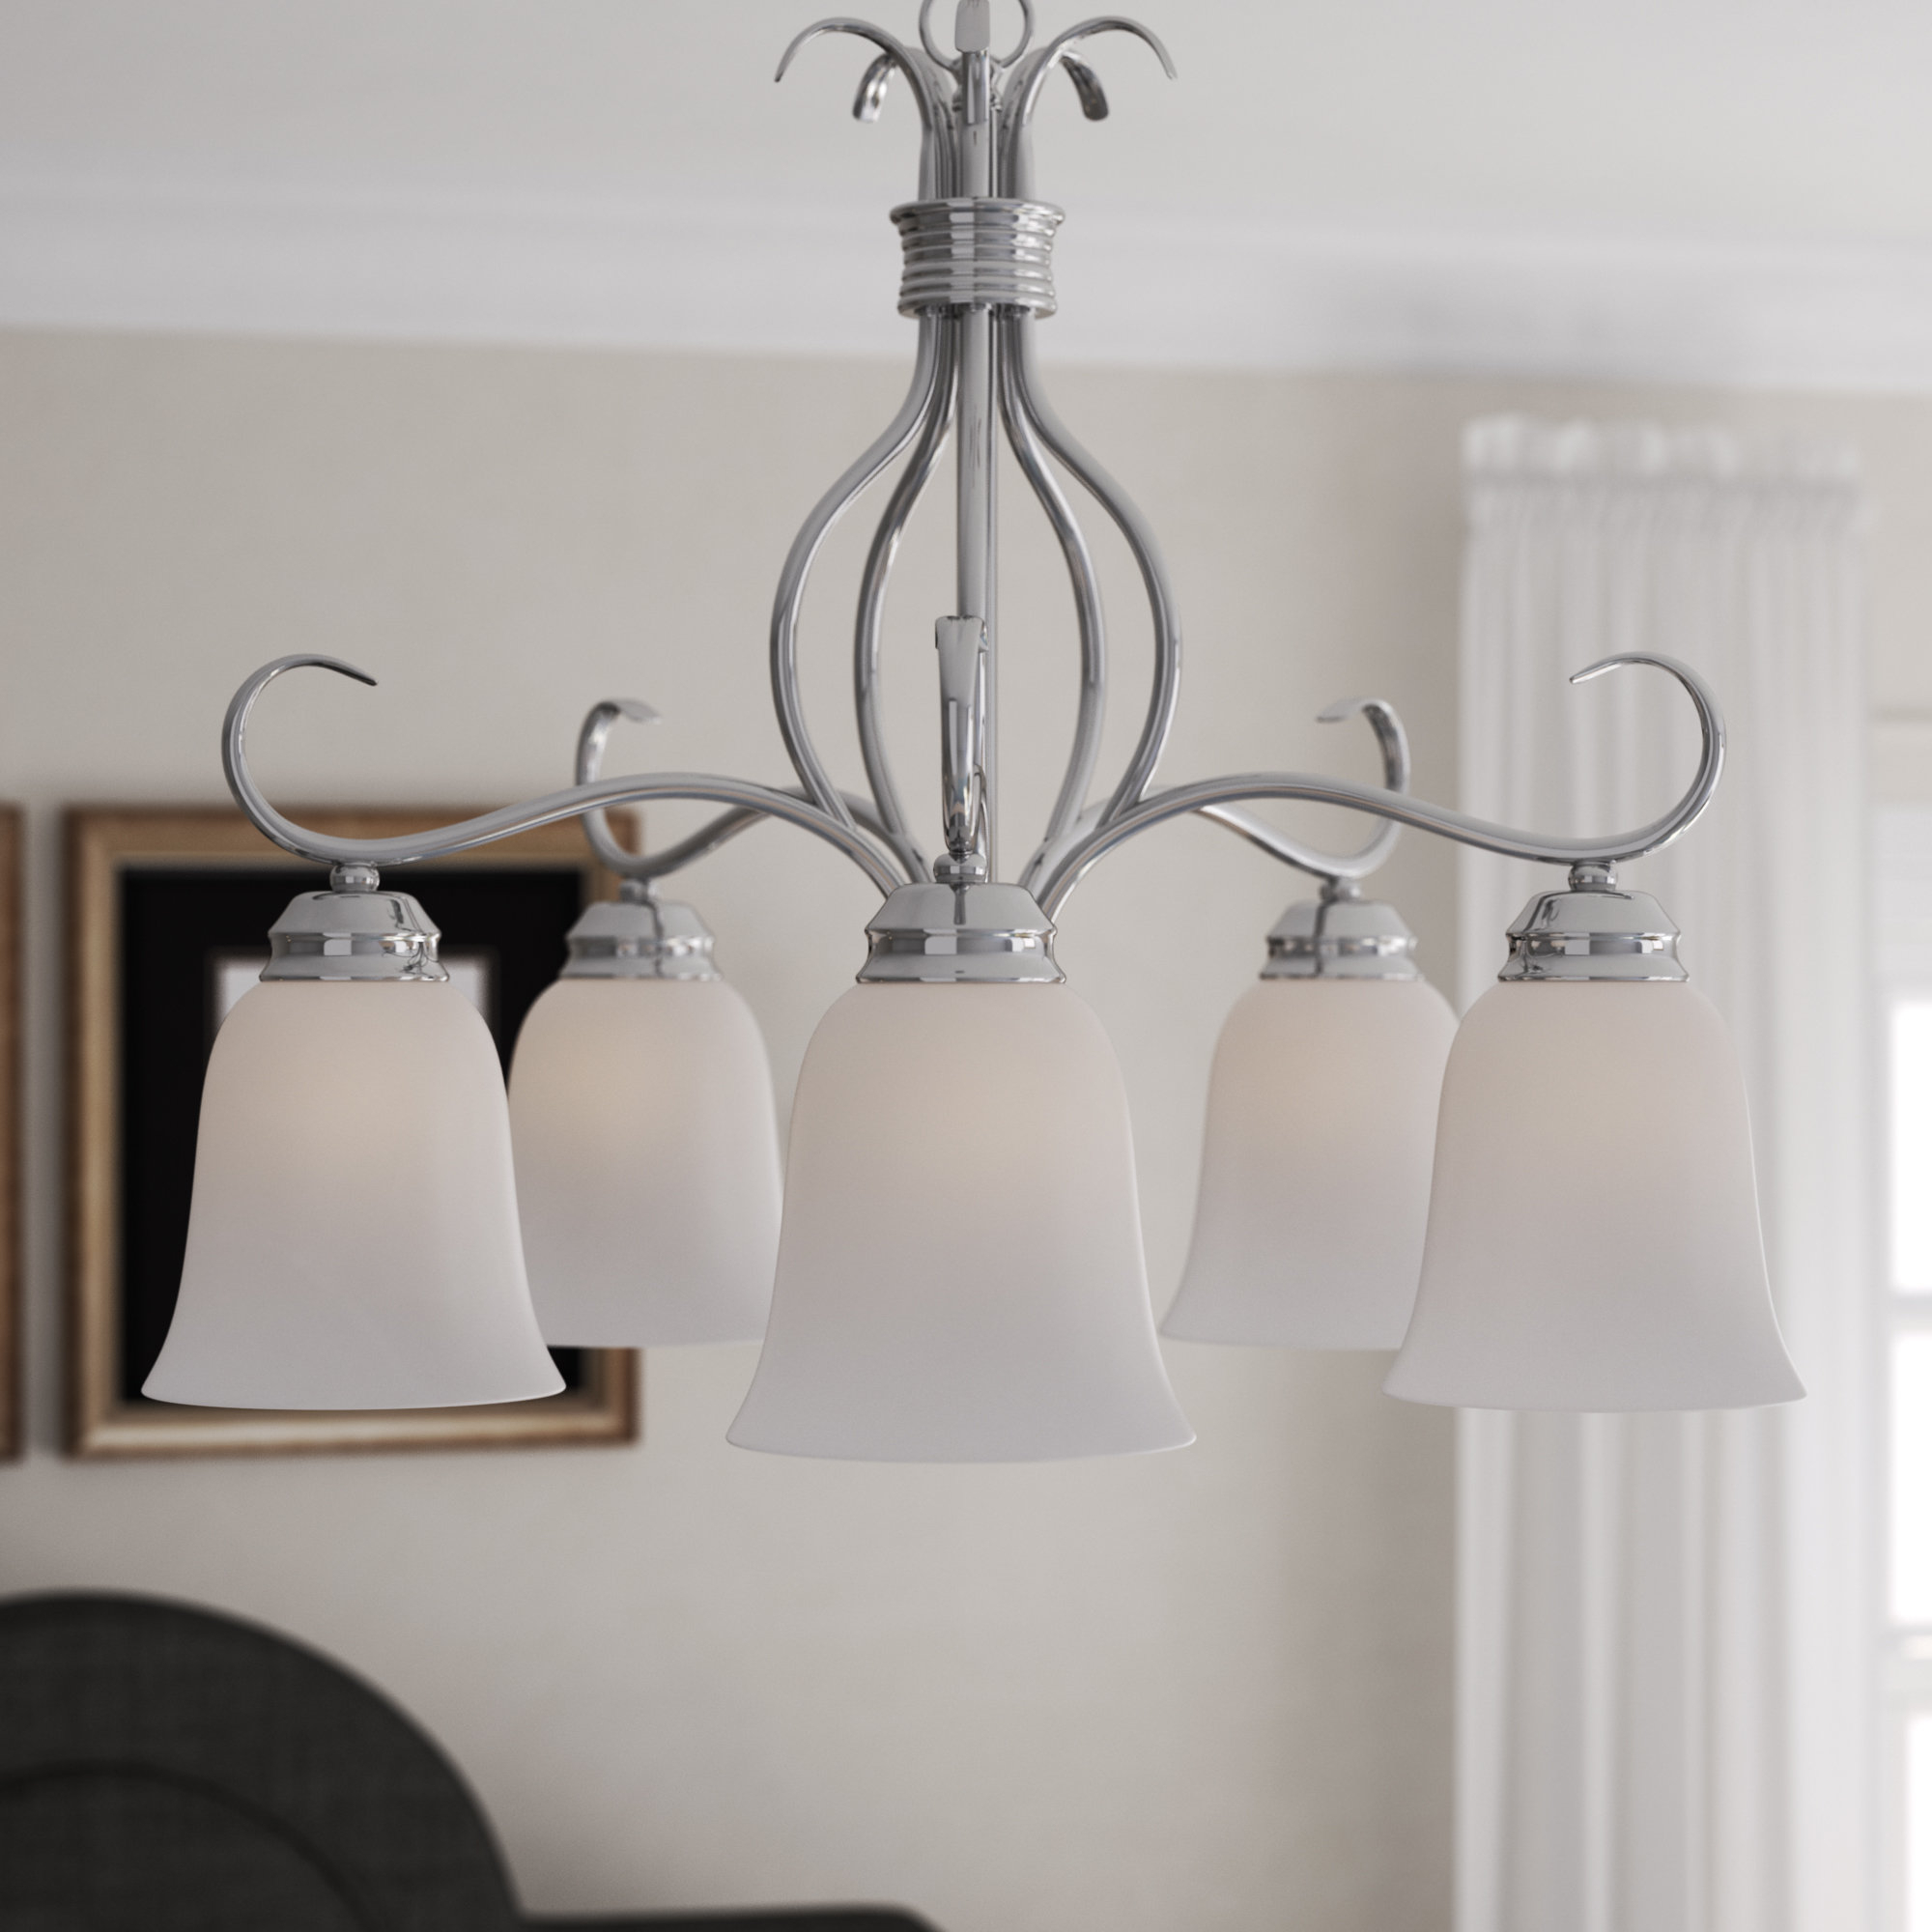 Newest Gaines 5 Light Shaded Chandeliers Pertaining To Wehr 5 Light Shaded Chandelier (View 16 of 20)